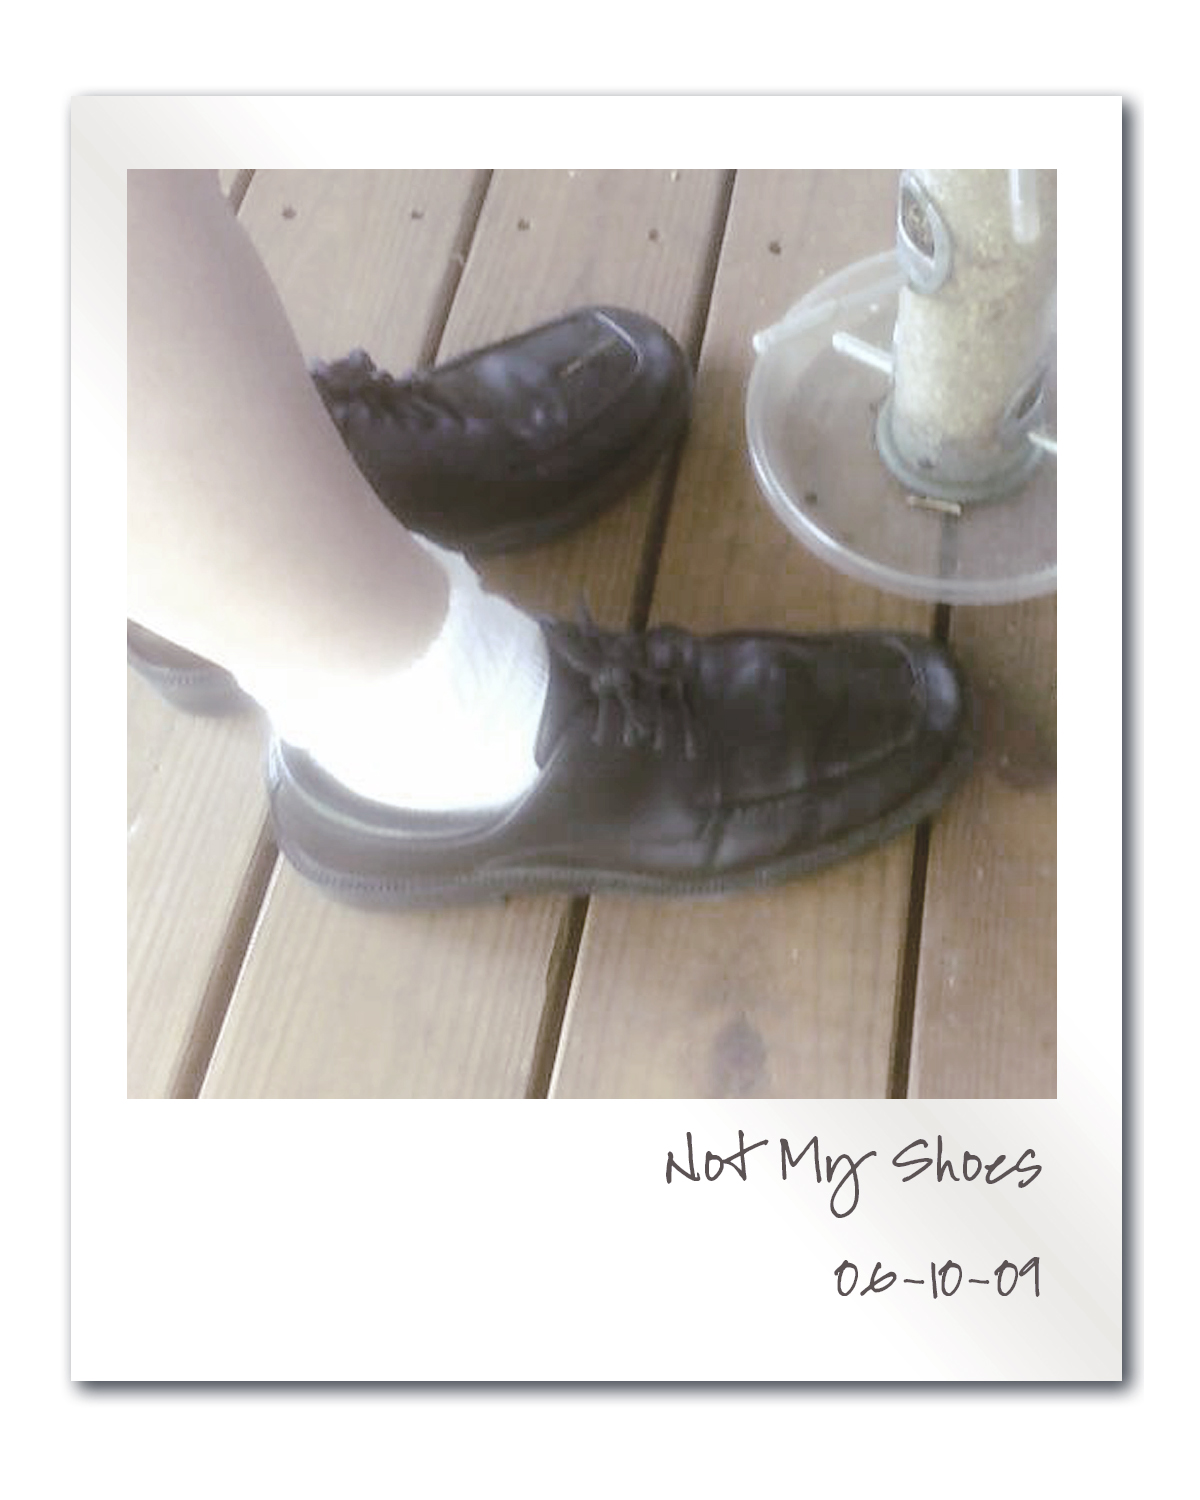 Not My Shoes - by Angela Josephine, blog post about authenticity, running